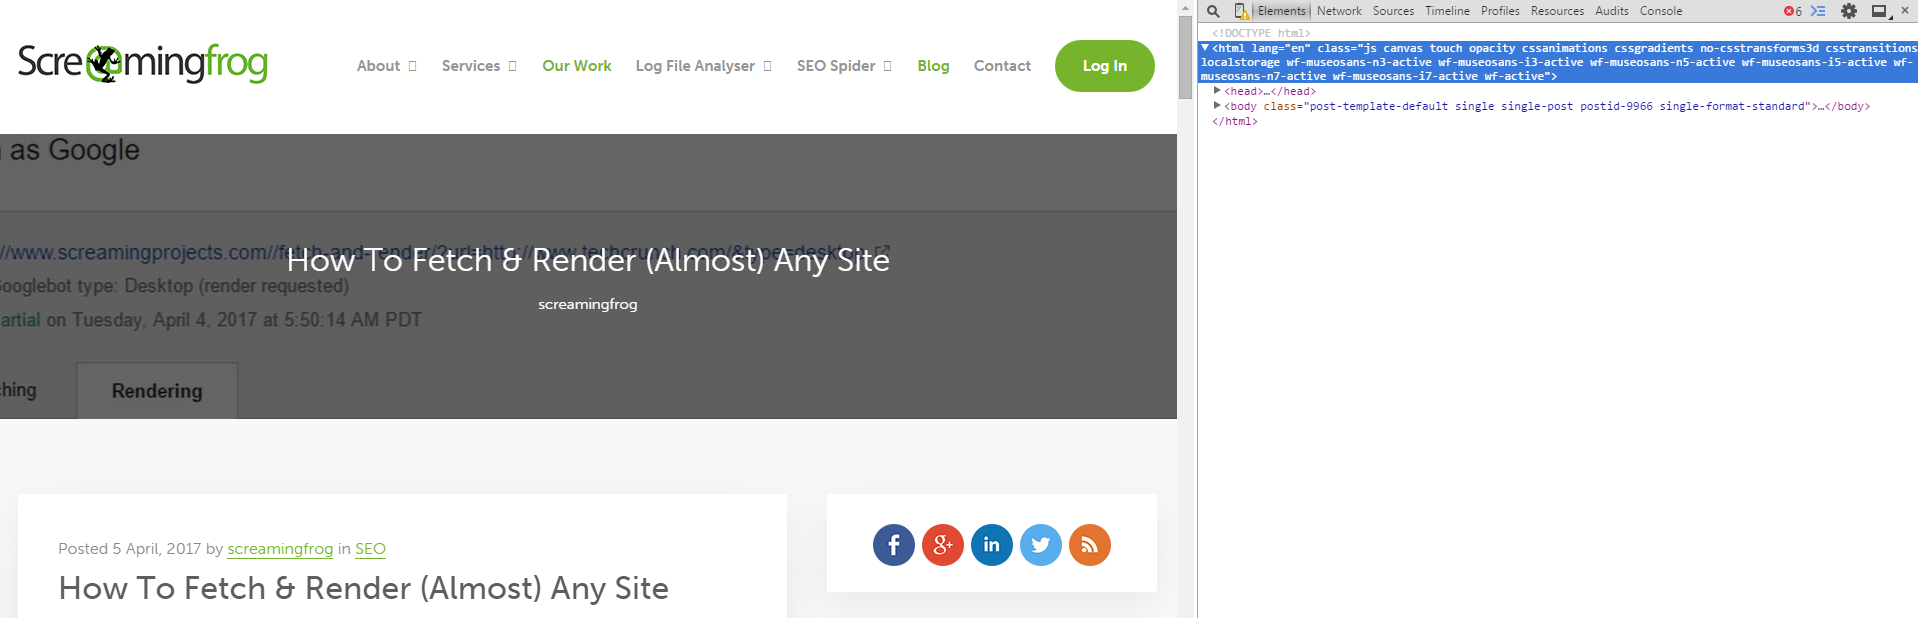 Inspect URLs for Search Console Accounts You Don't Have Access To | ohgm